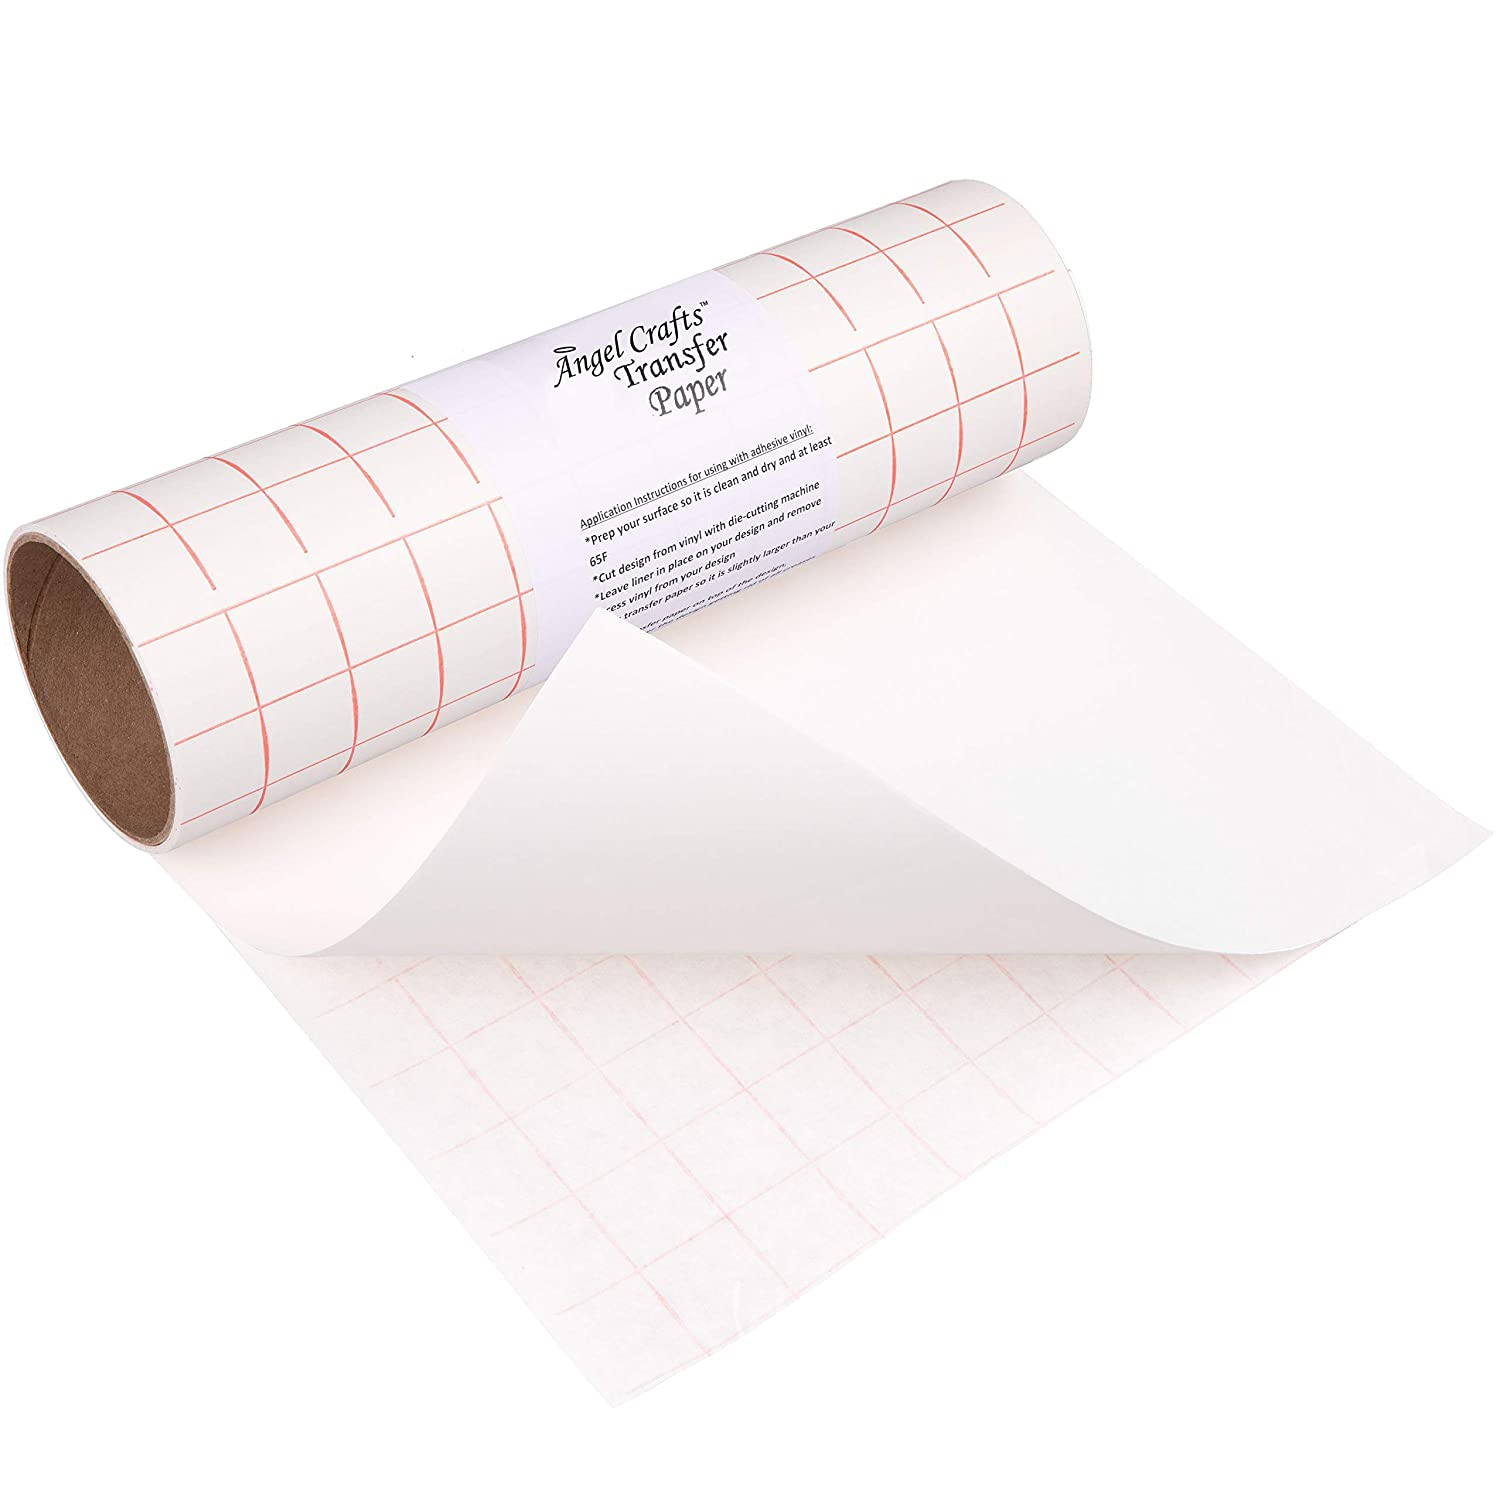 Angel crafts transfer paper tape craft transfer tape for vinyl application with red grid lines self adhesive transfer paper roll compatible with cricut